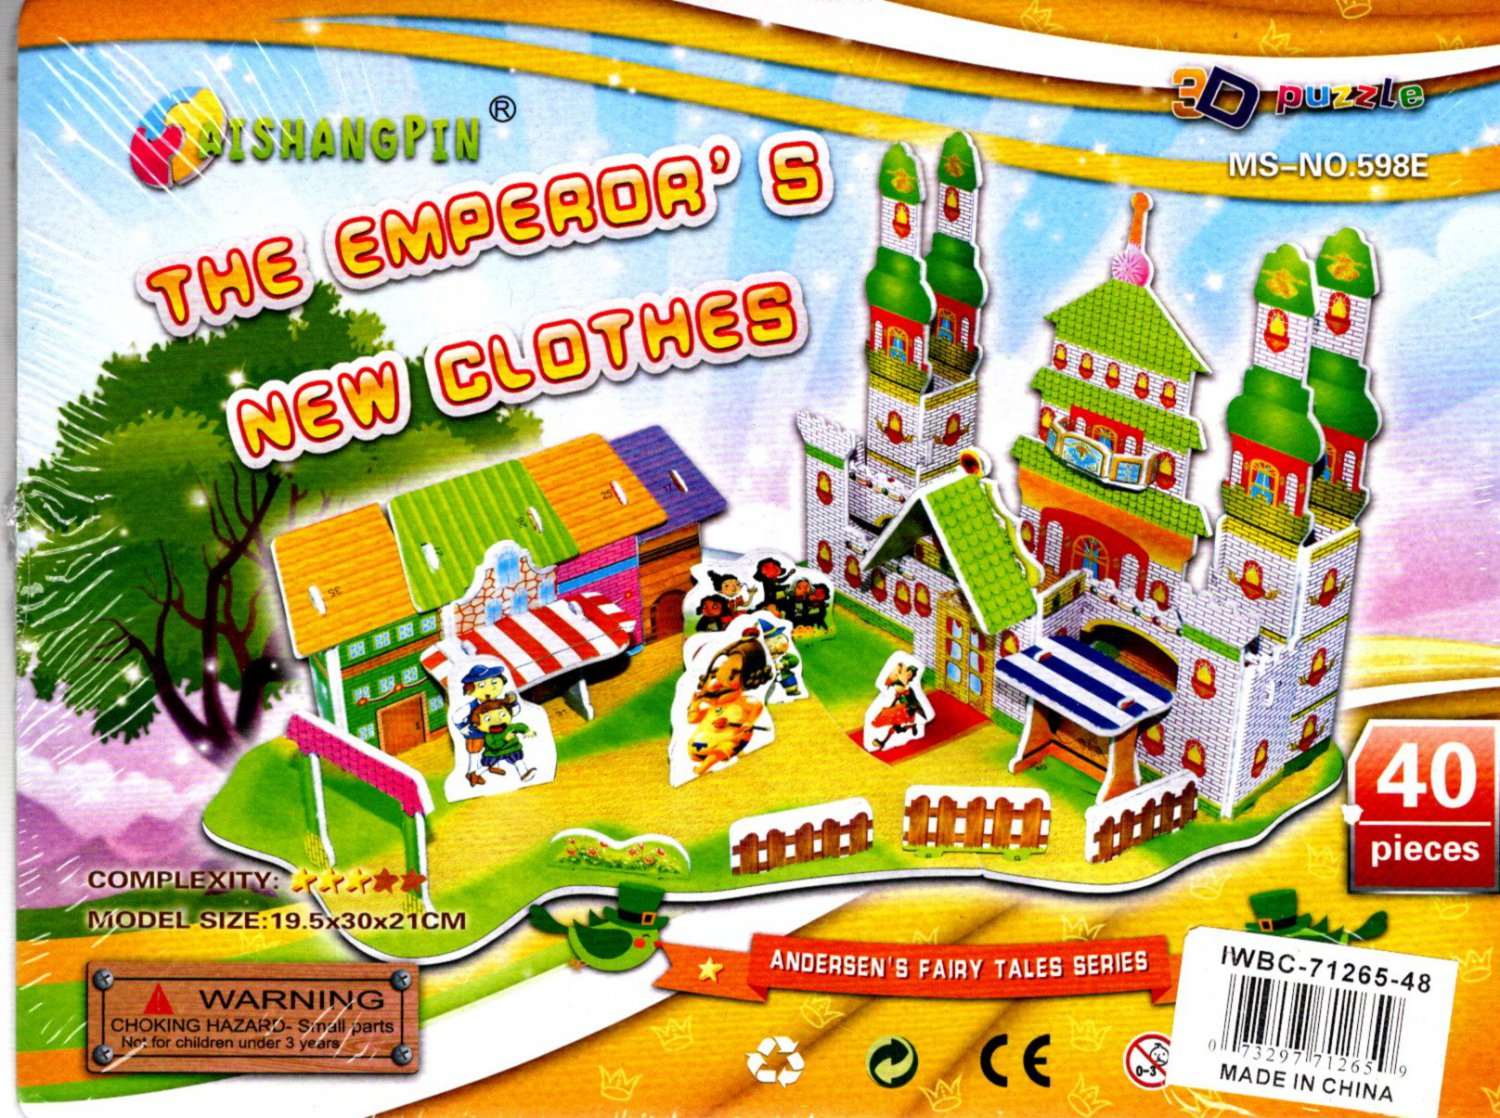 3D Puzzle Aishangpin - The Emperors New Clothes - Andersens Fairy Tales Series 40 Pieces